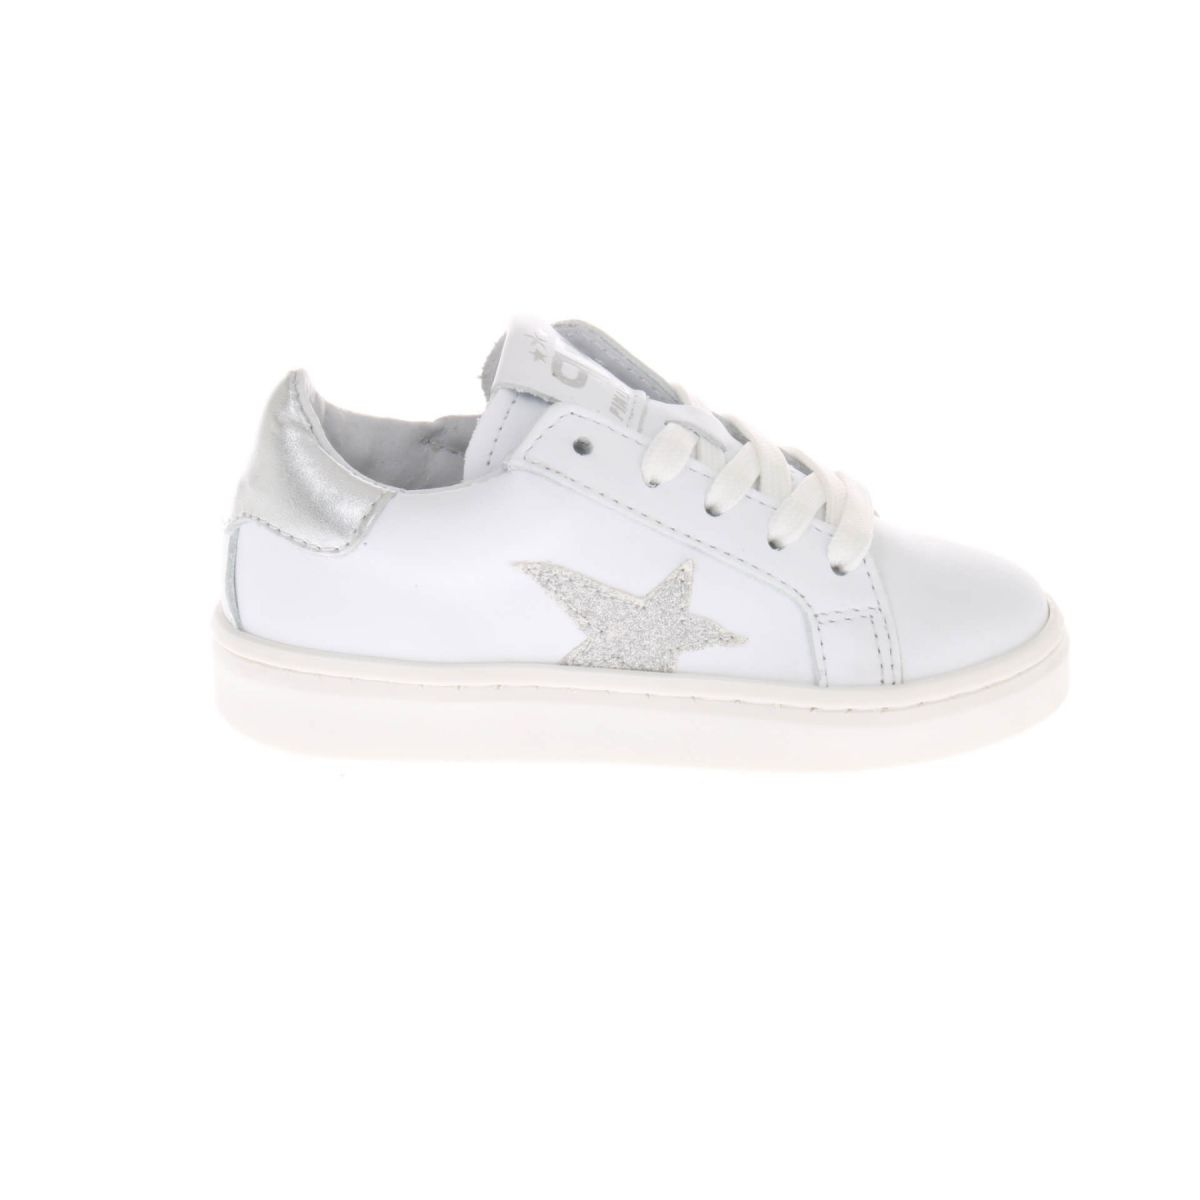 Pinocchio P1257 Sneakers Wit Zilver